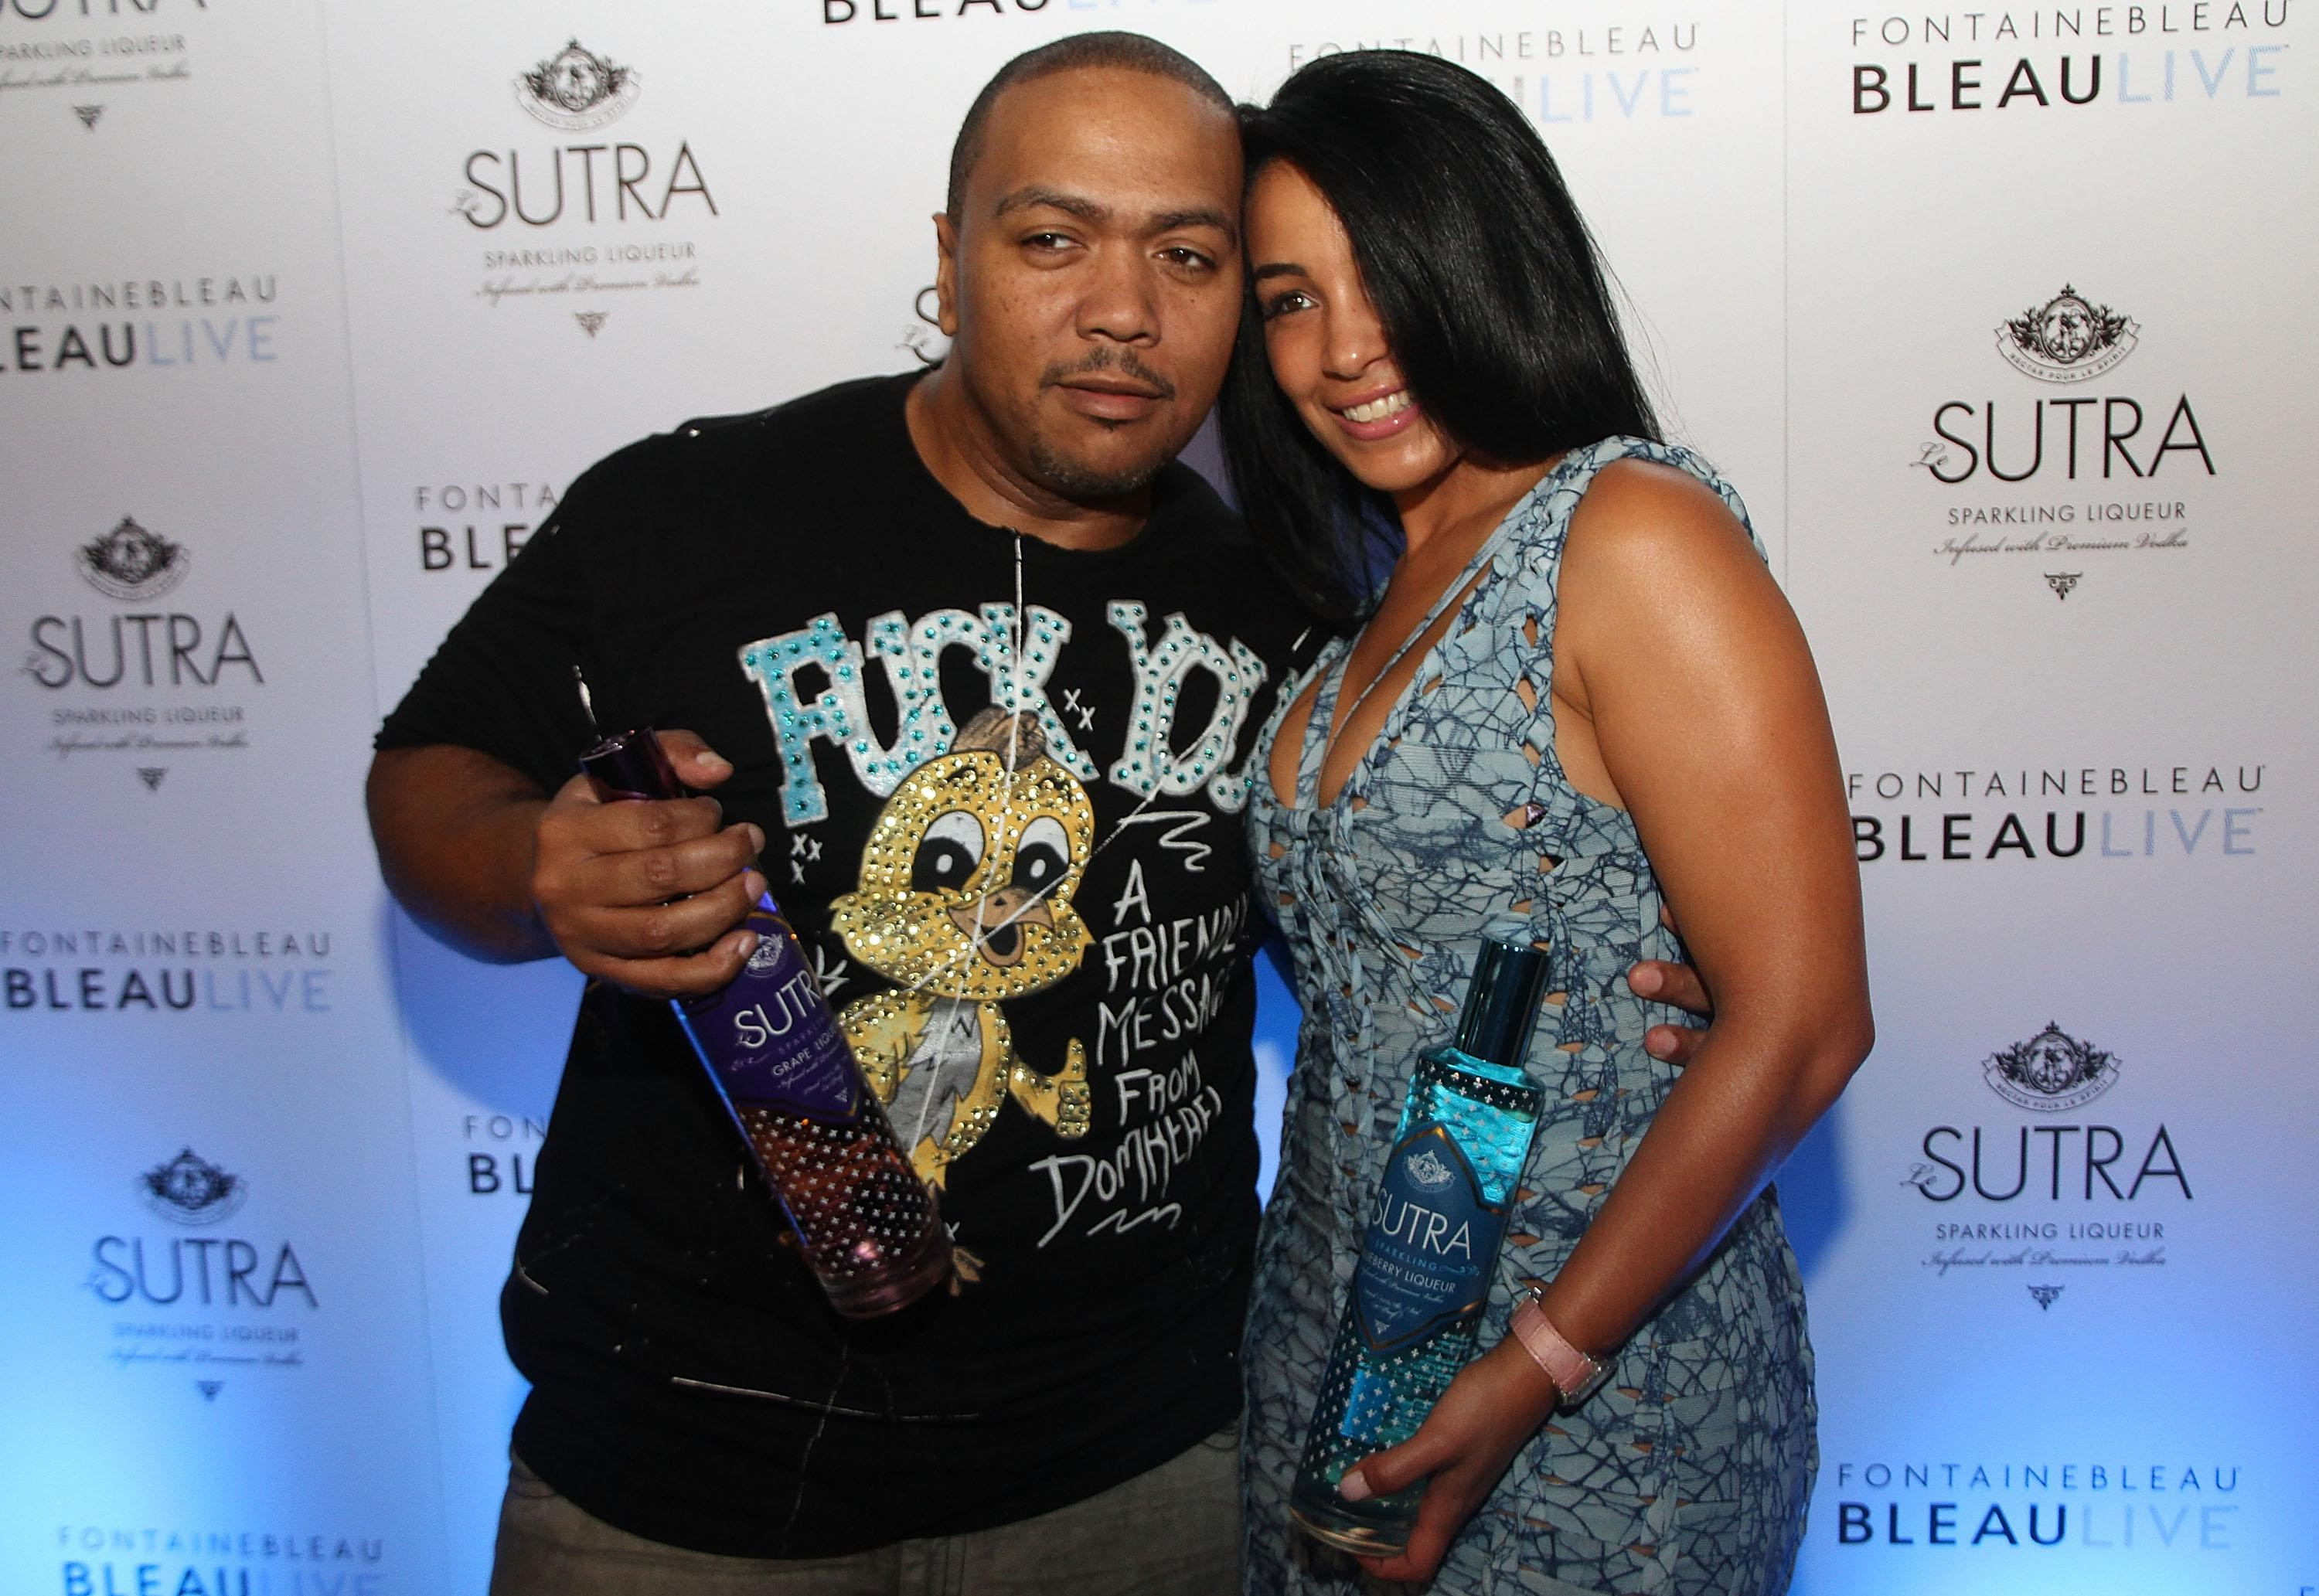 Timbaland Labor Day Weekend Event At Fontainbleu Miami Beach - Arrivals